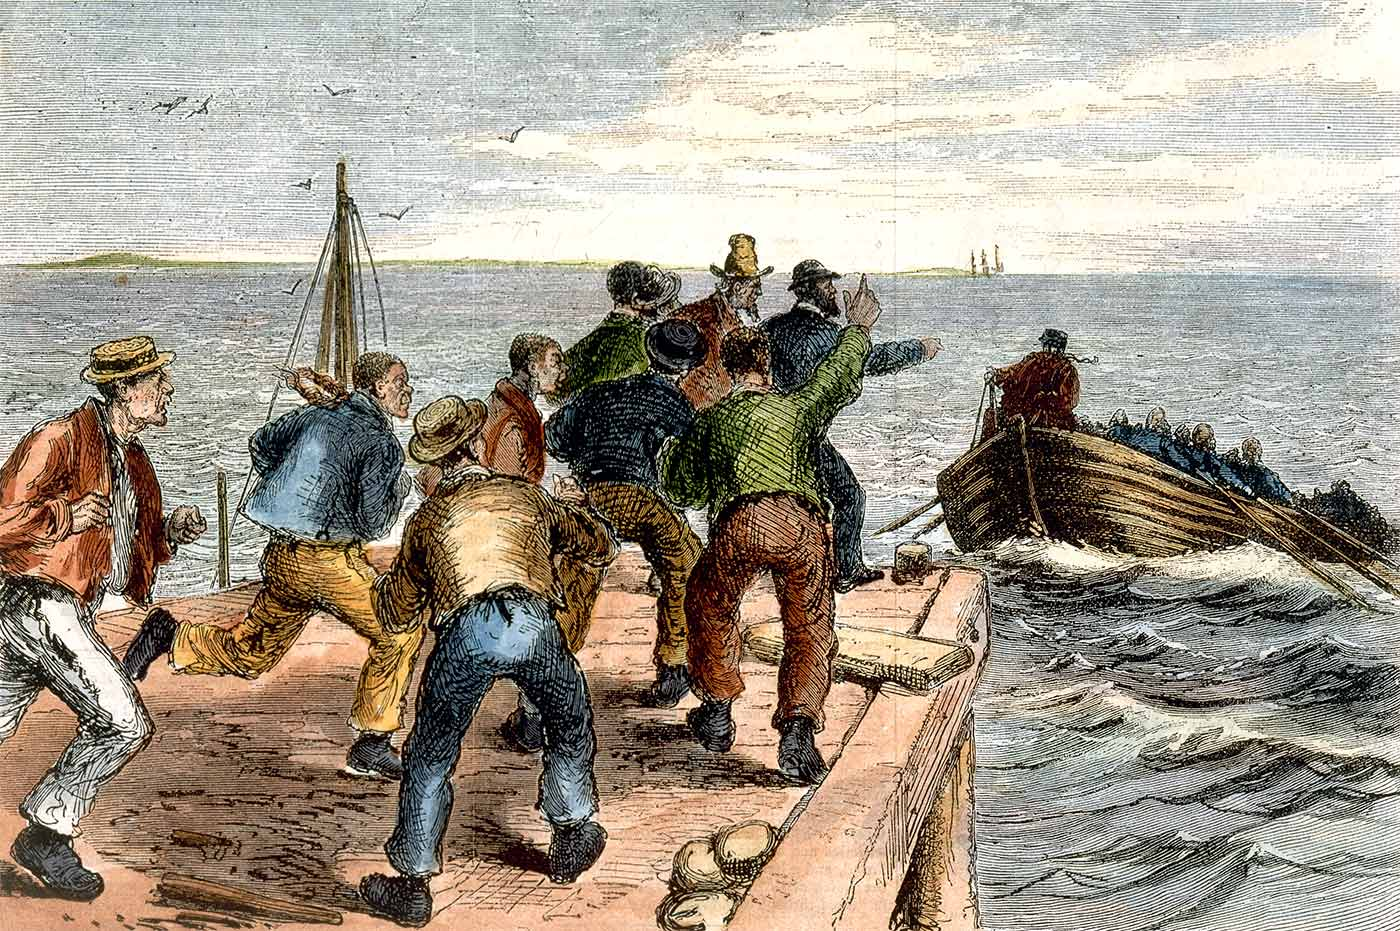 Watercolour sketch featuring men escaping by boat in pursuit of a group of other men.